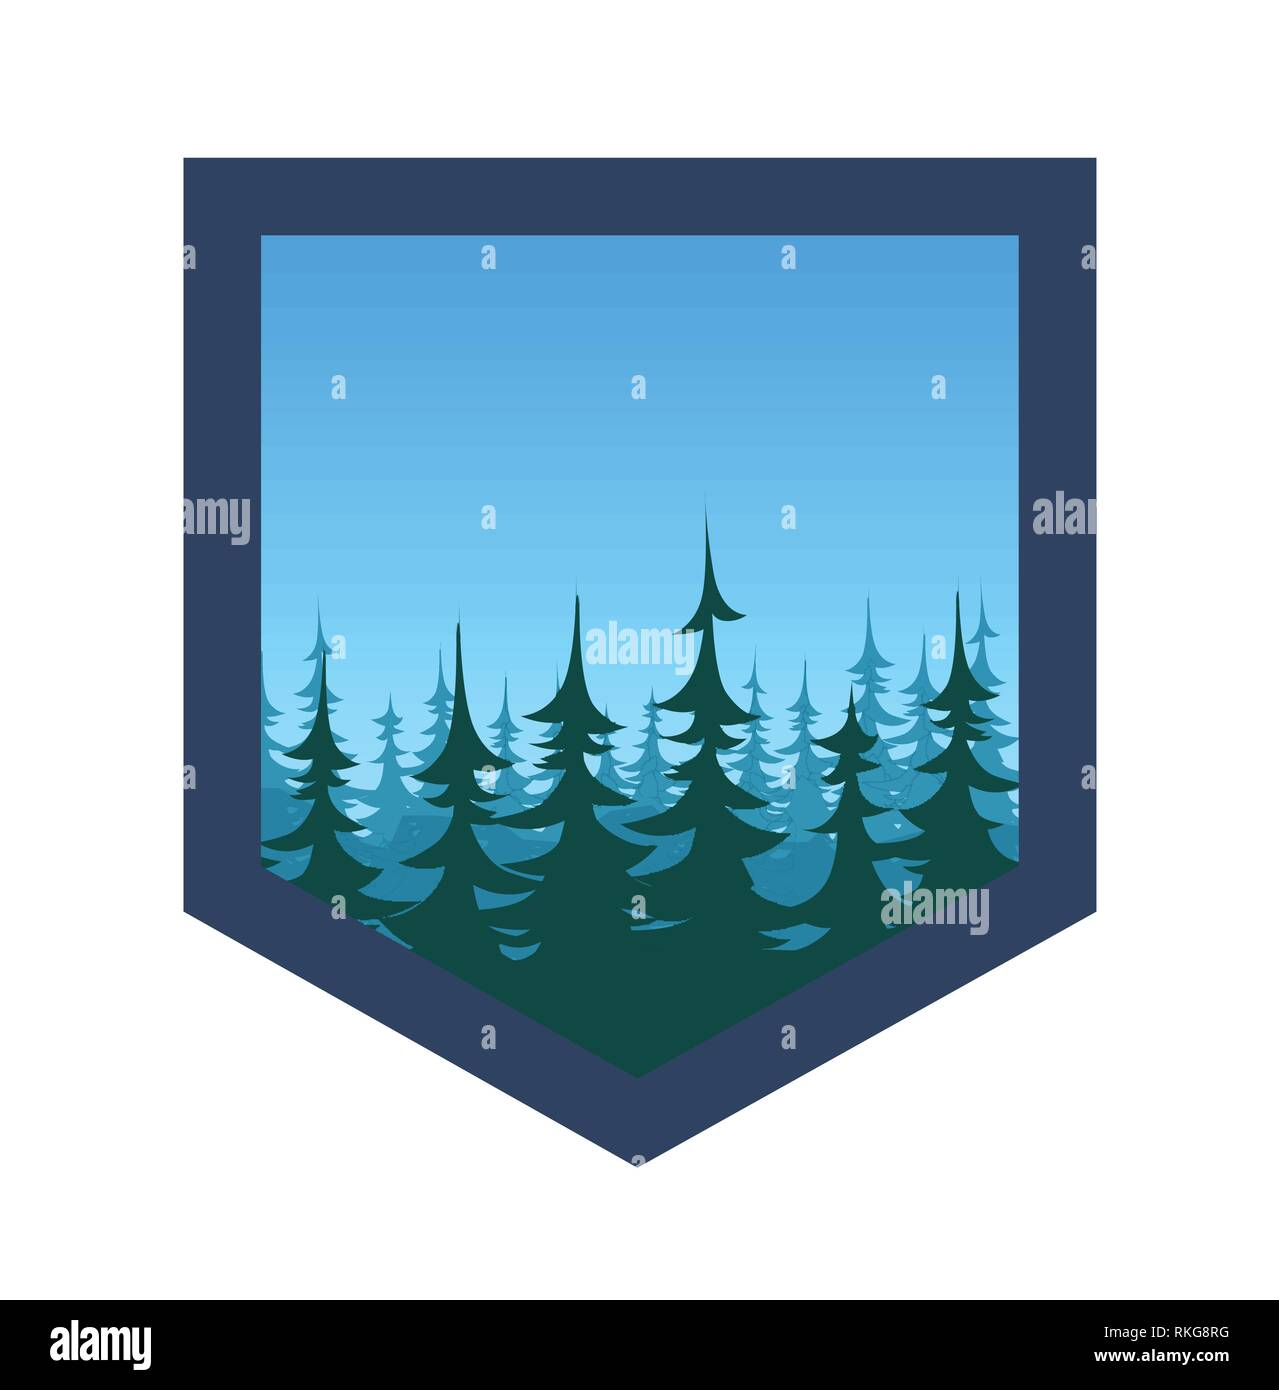 Expedition Badge with Forest under blue sky, vector illustration - Stock Image